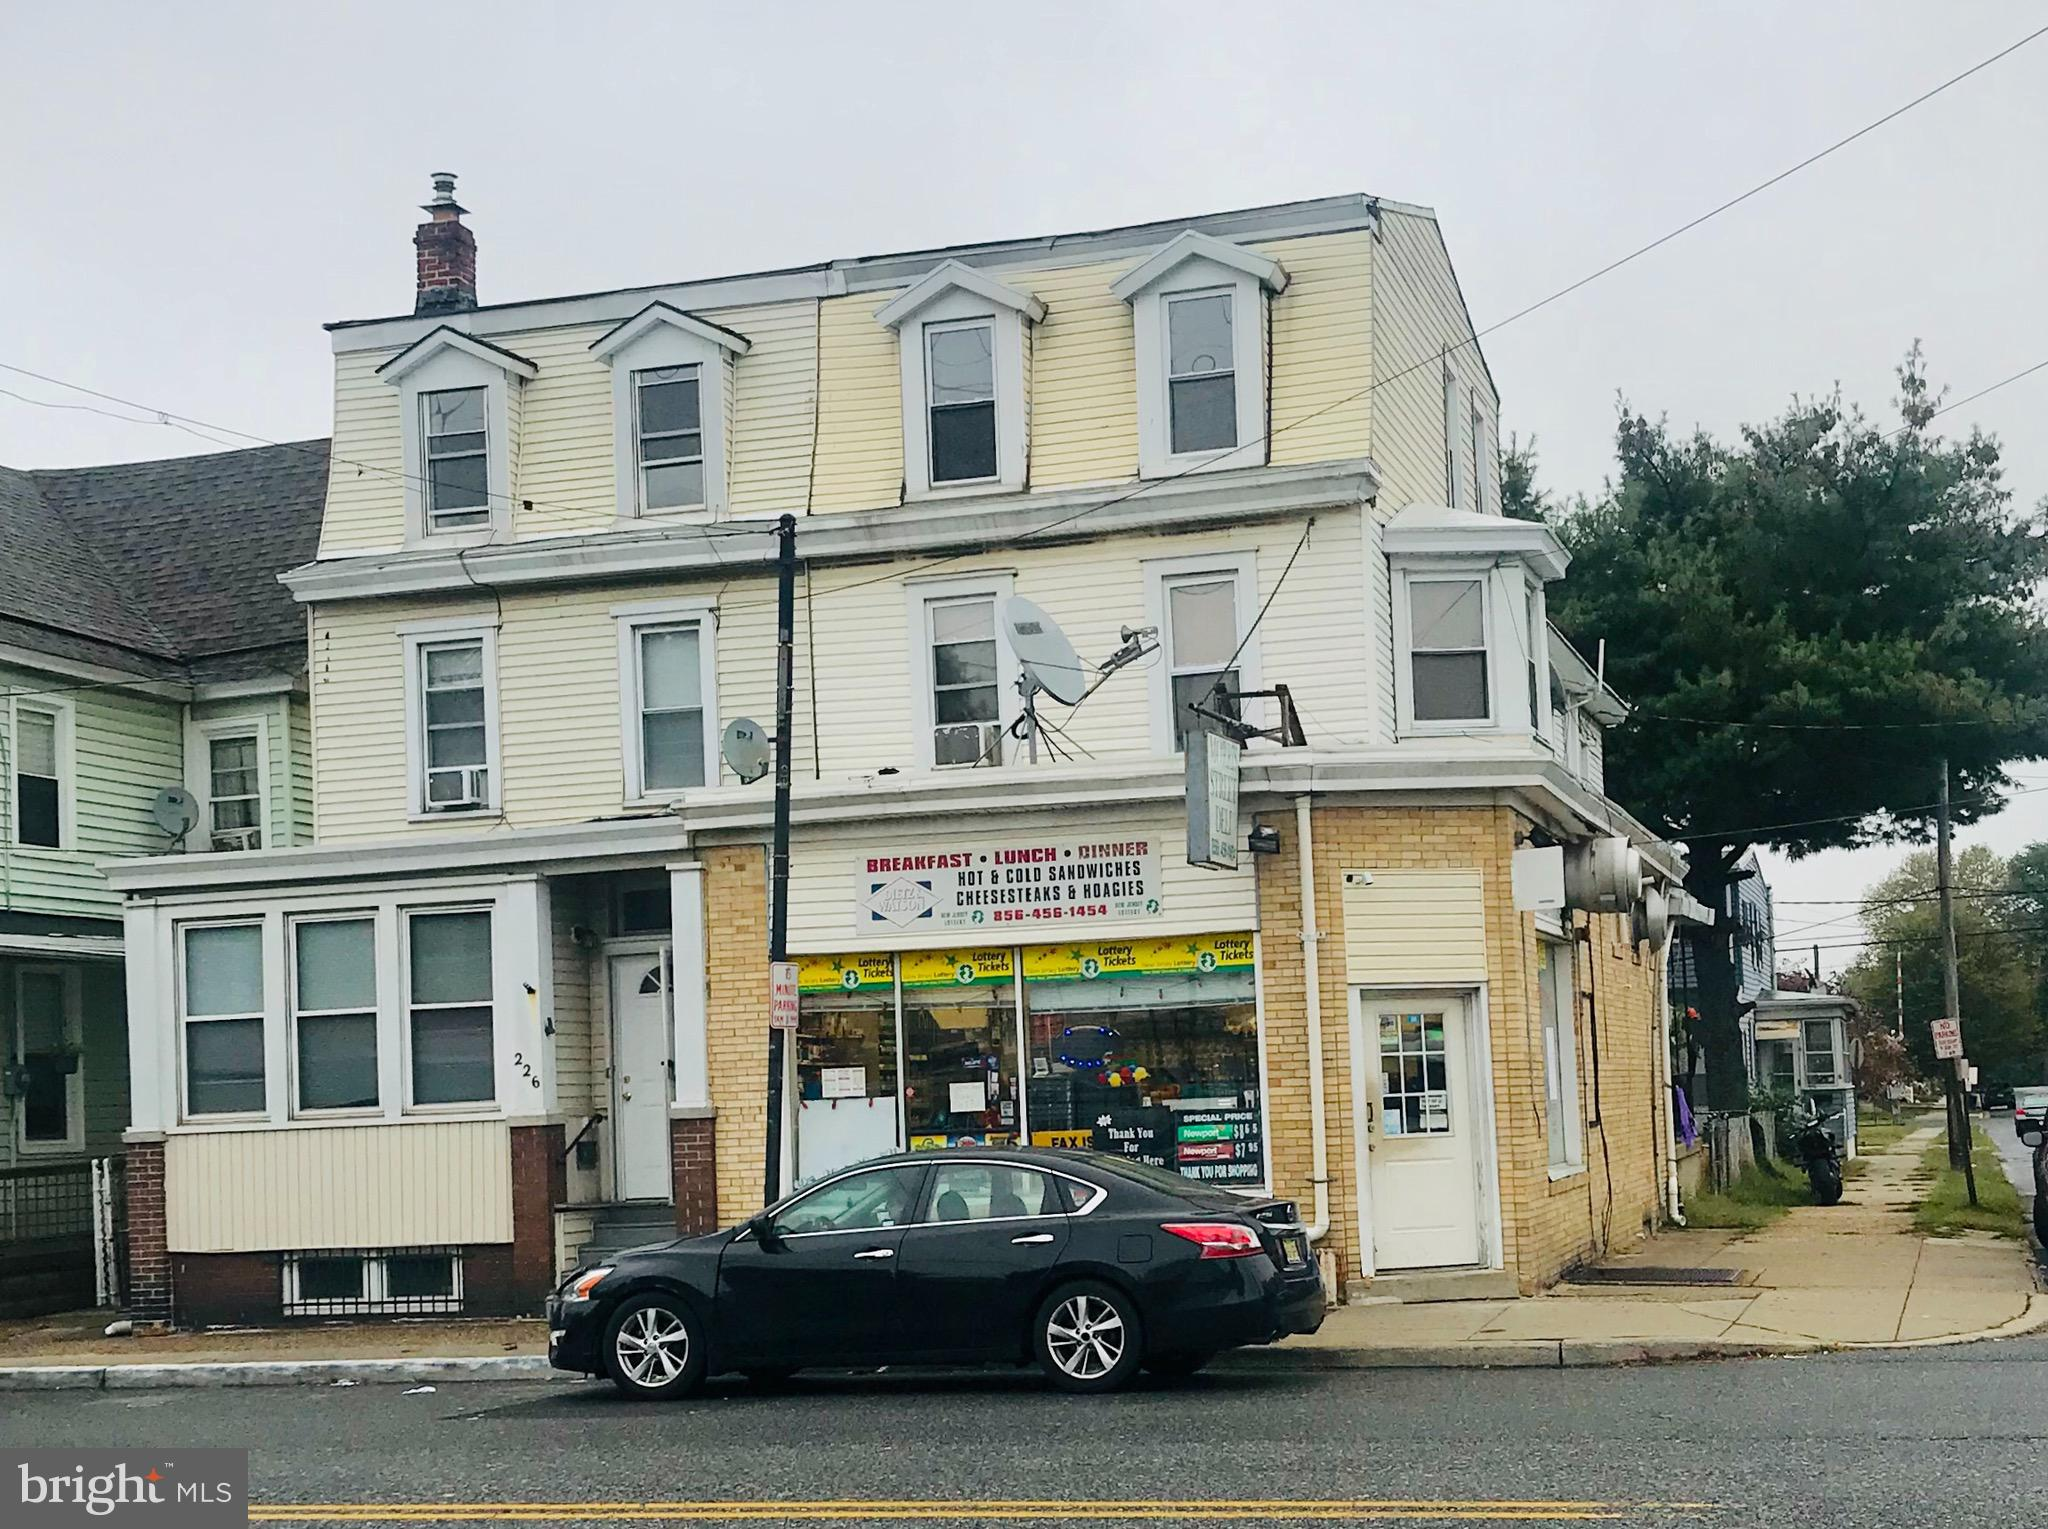 224 N BROADWAY, GLOUCESTER CITY, NJ 08030